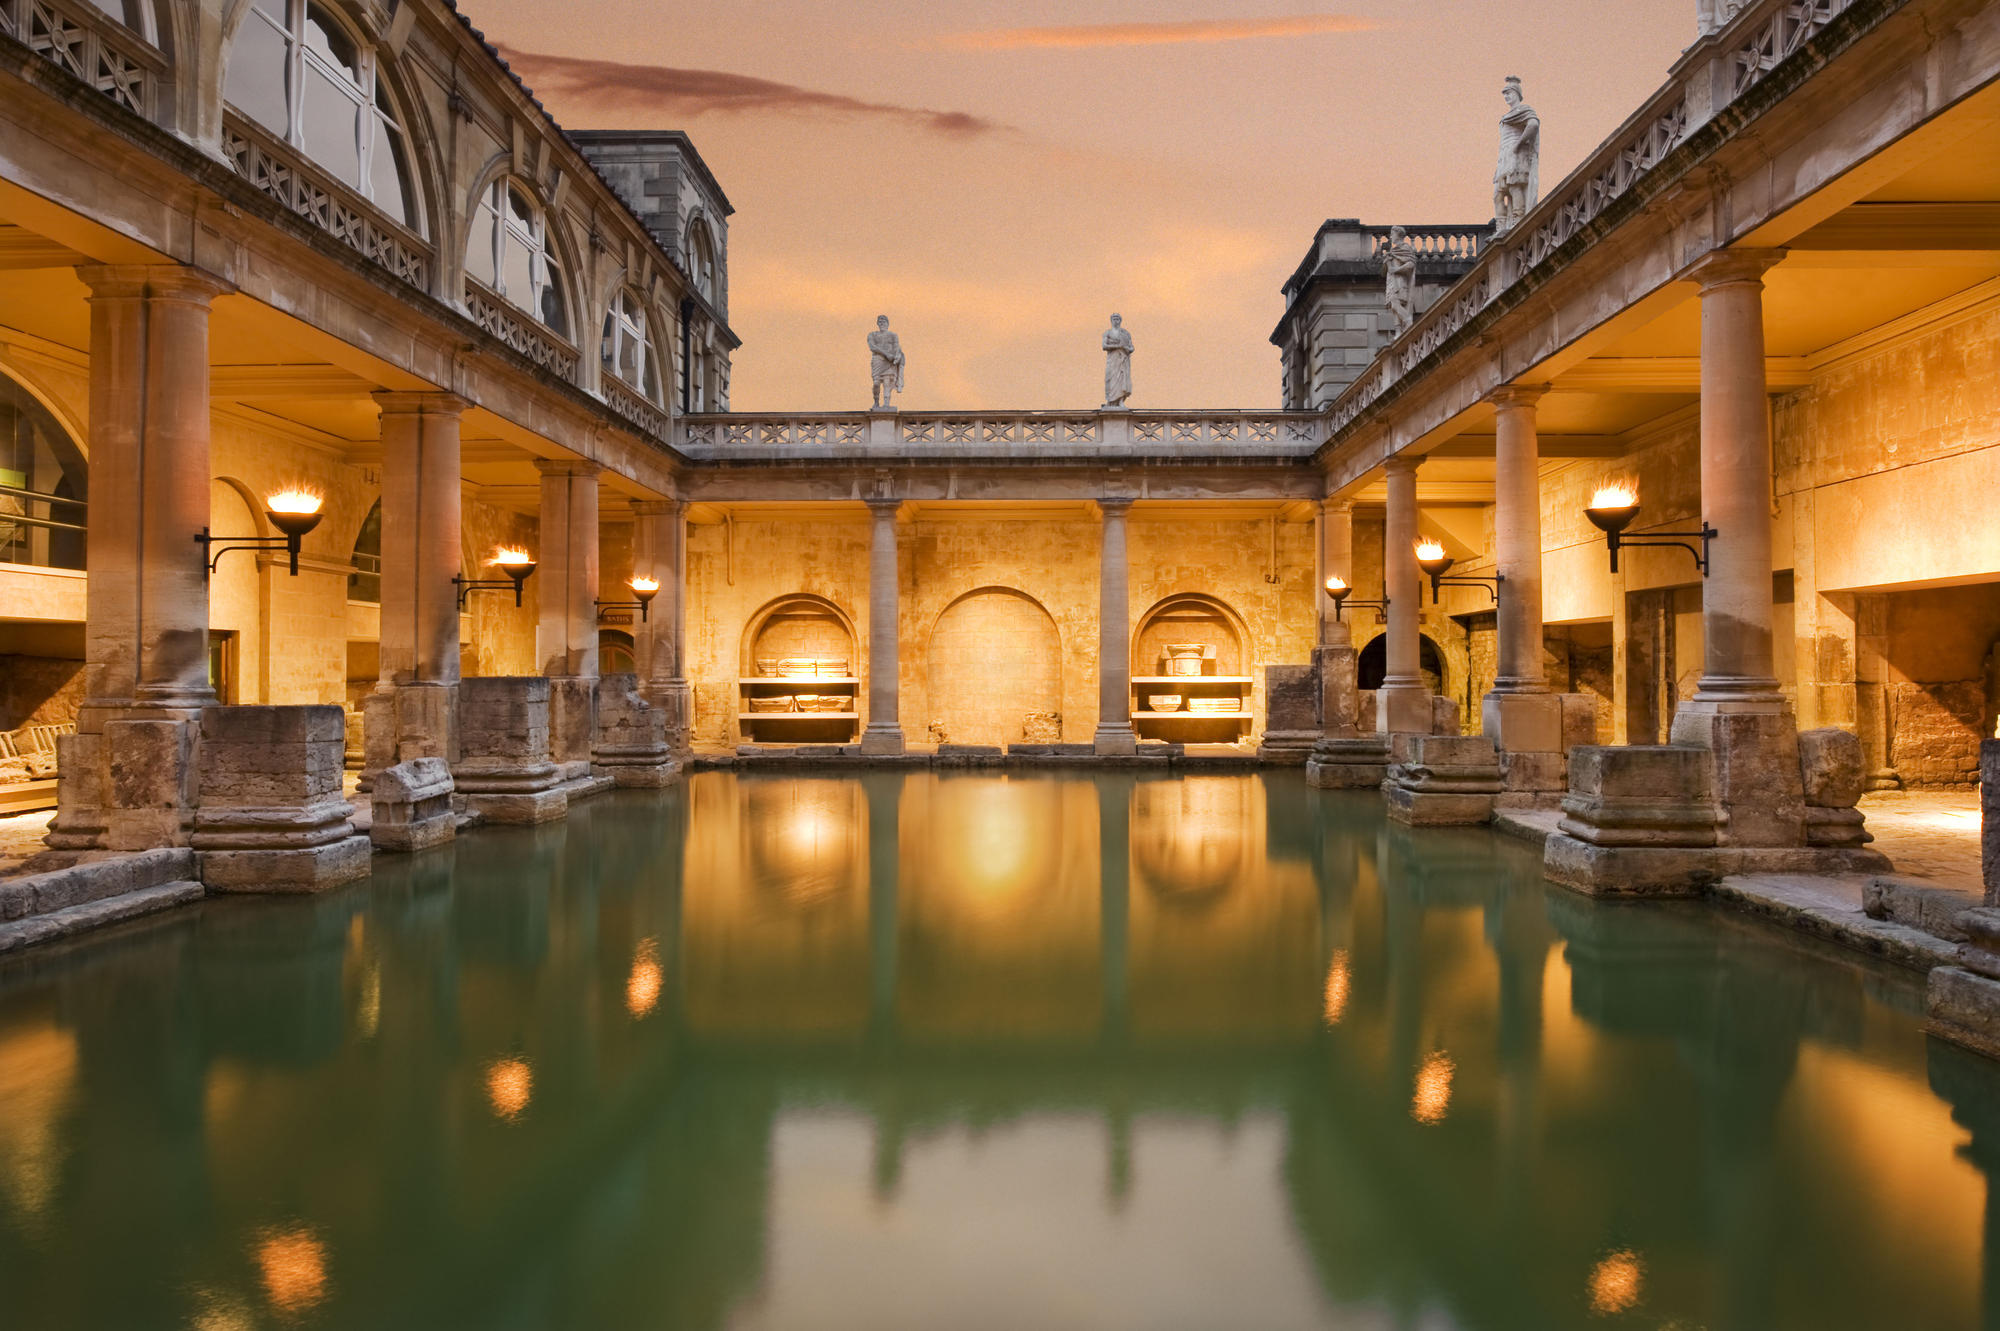 Showers And Baths Top 10 Wonders Of The World